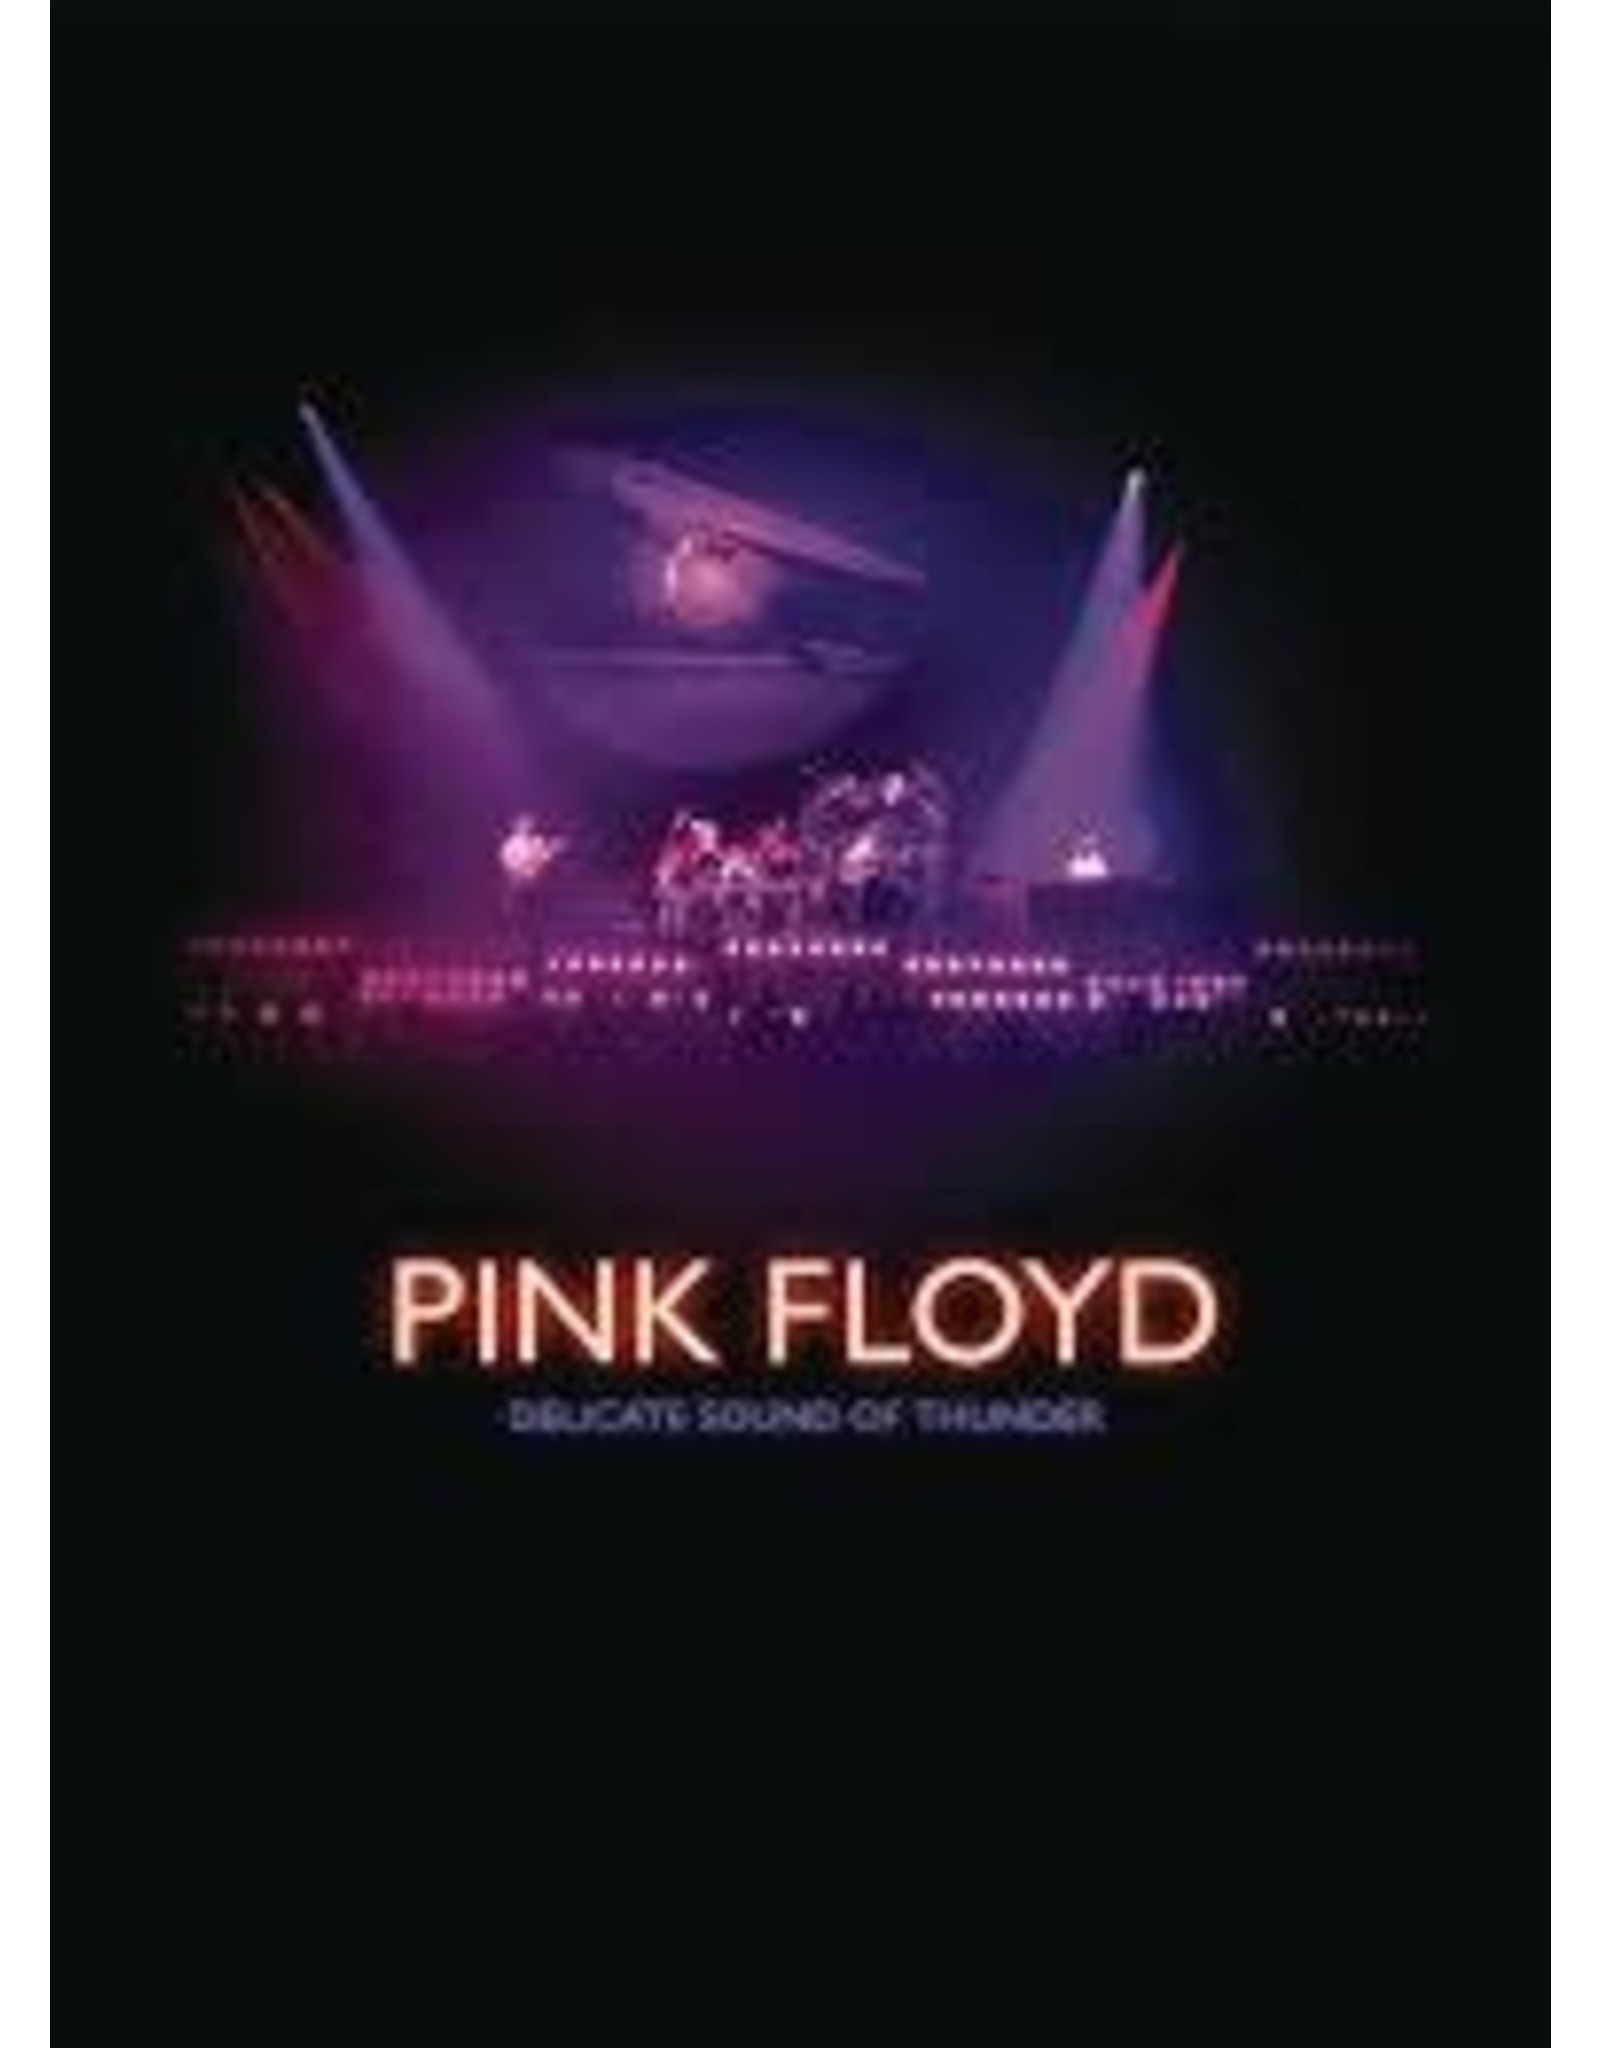 Pink Floyd - Delicate Sound of Thunder DVD